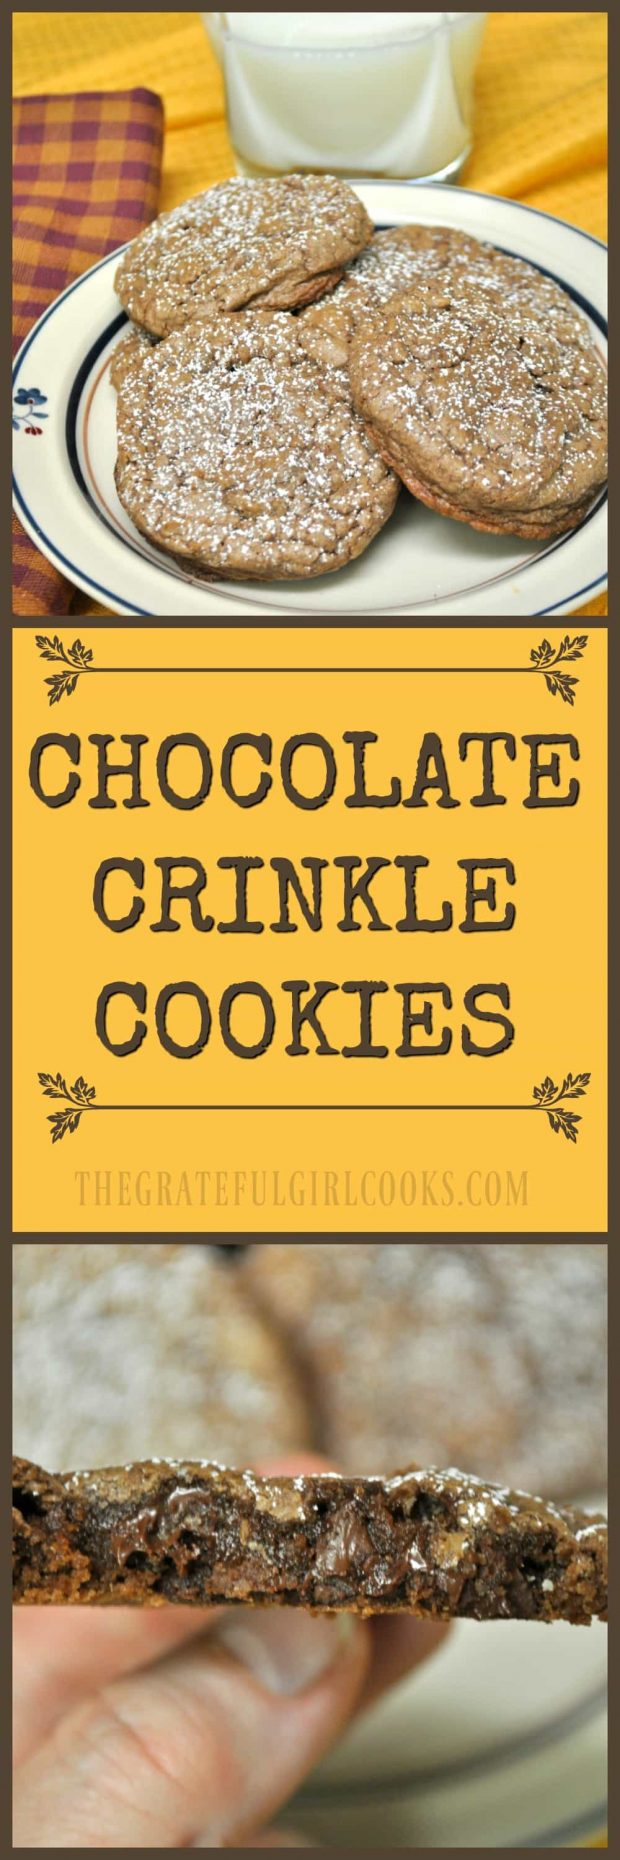 """Chocolate Crinkle Cookies / The Grateful Girl Cooks! How can you go wrong with easy to make chocolate, chocolate chip cookies that get all cute and """"crinkly"""" when you bake 'em?"""